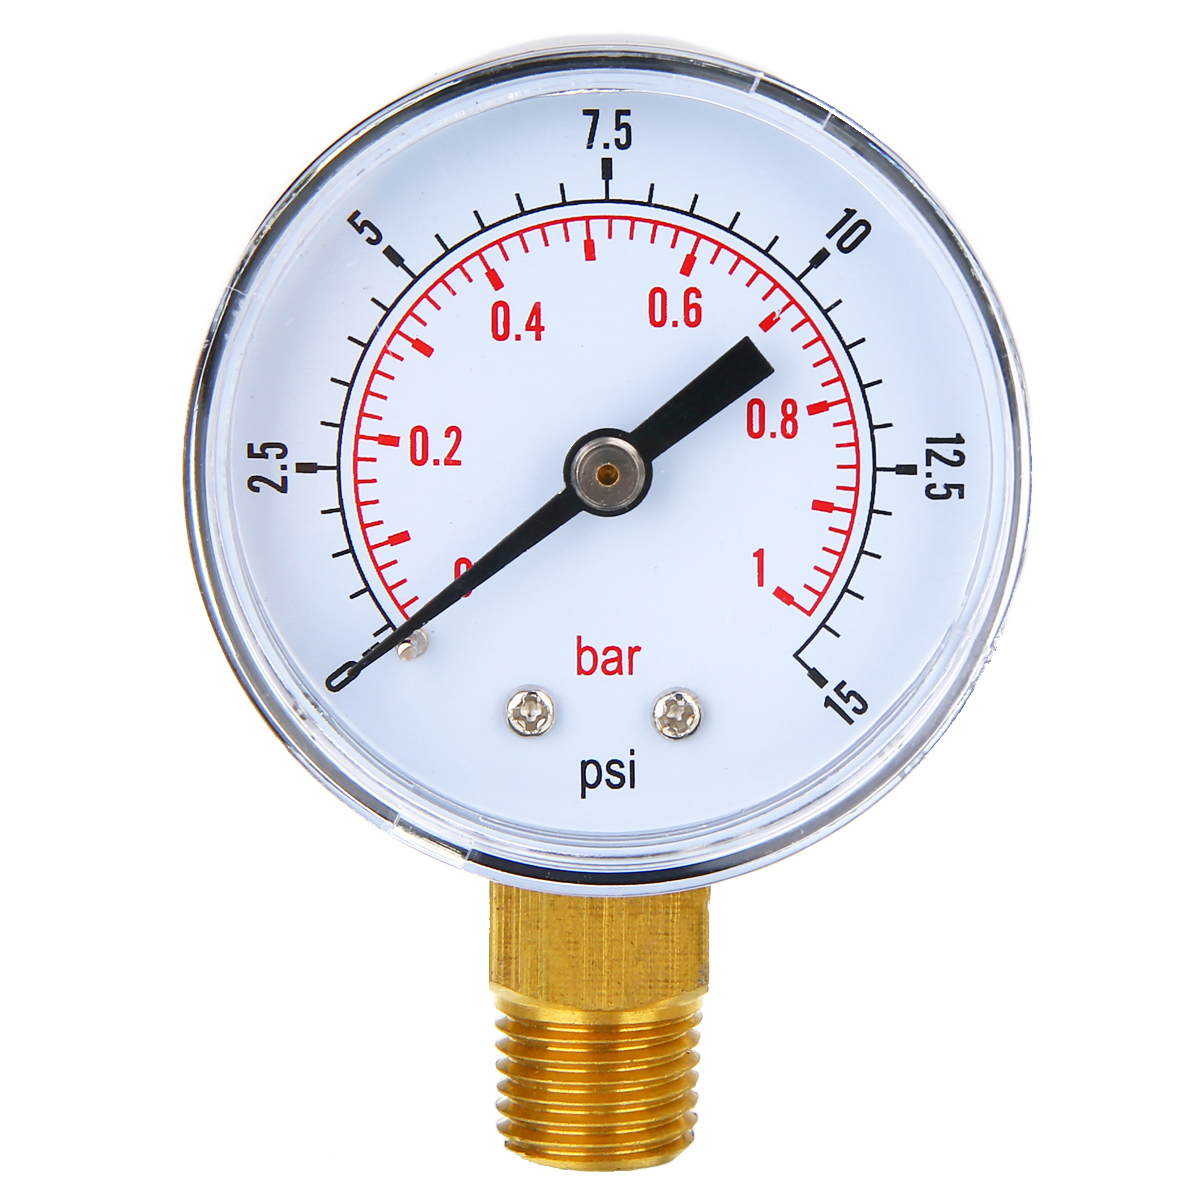 New Low Pressure Pressure Gauge 50mm Diameter 0-15 PSI 0-1 Bar 1/4 BSPT For Fuel Air Oil Gas Water 70*50*22mm